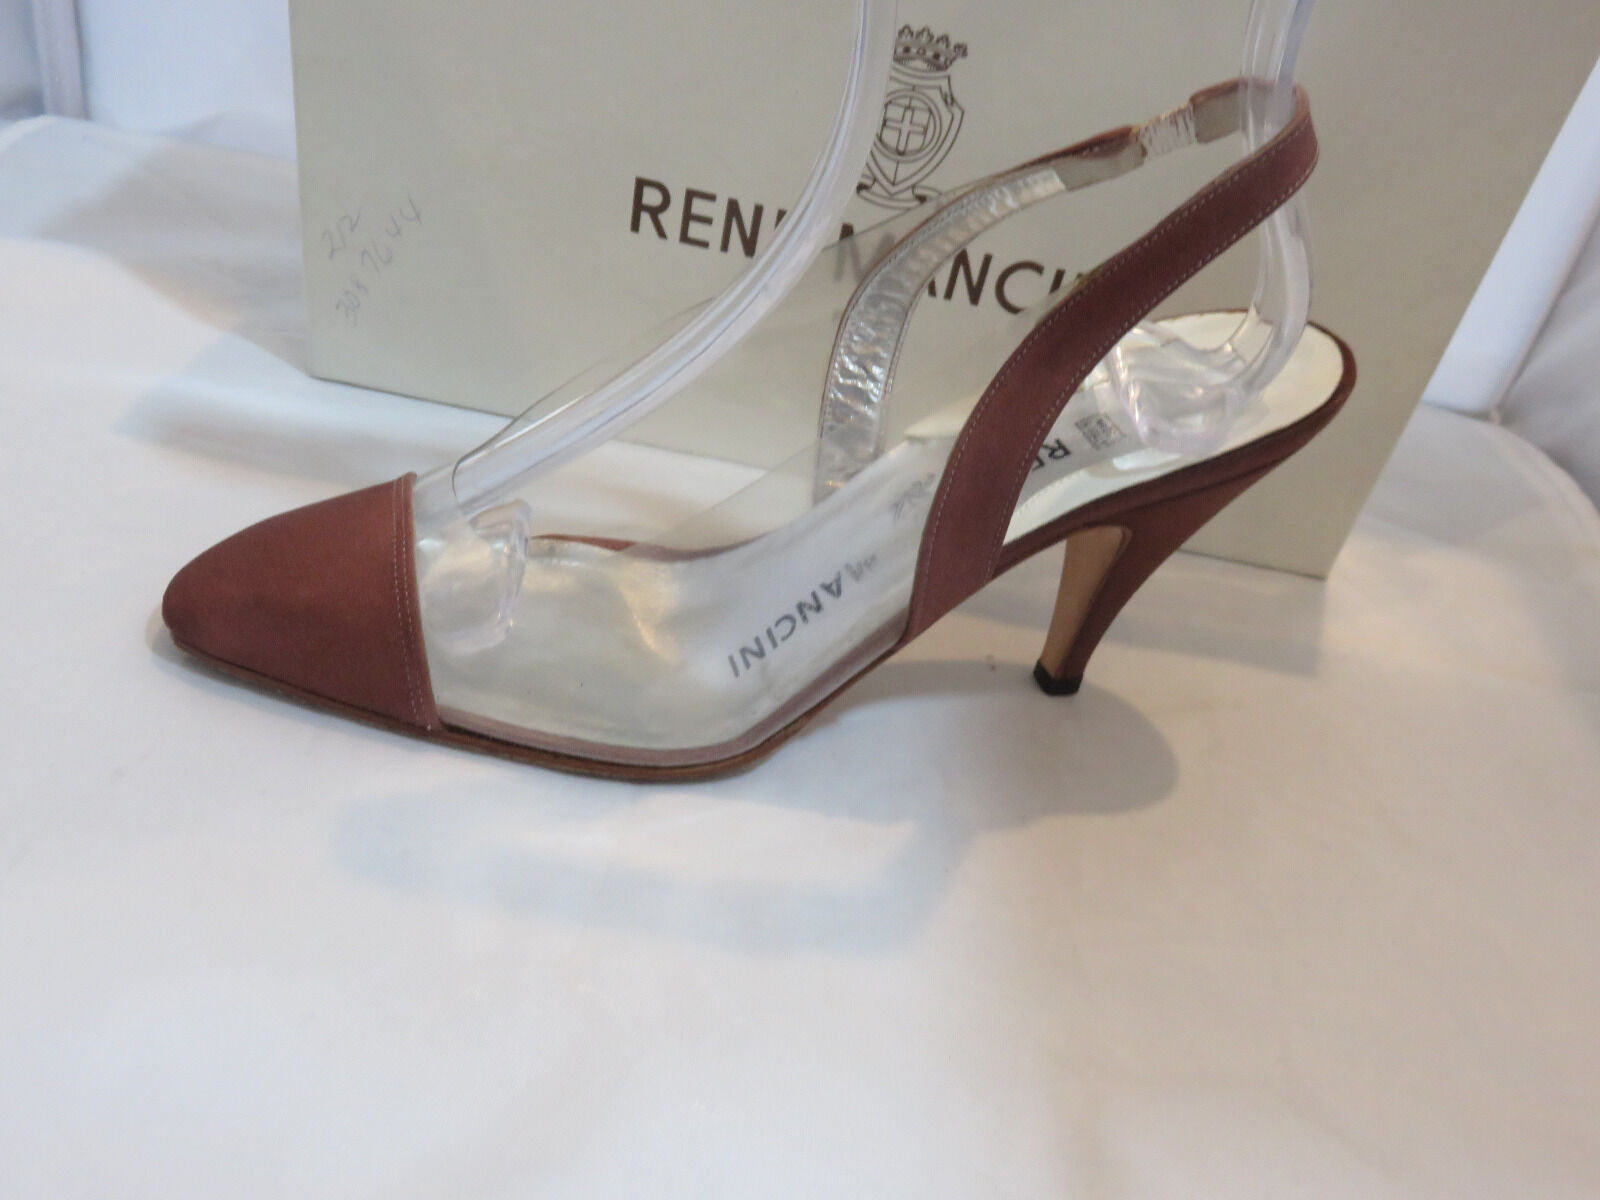 Rene Mancini Clear Rust  Slingbacks High (3in and Up) Size 36.5